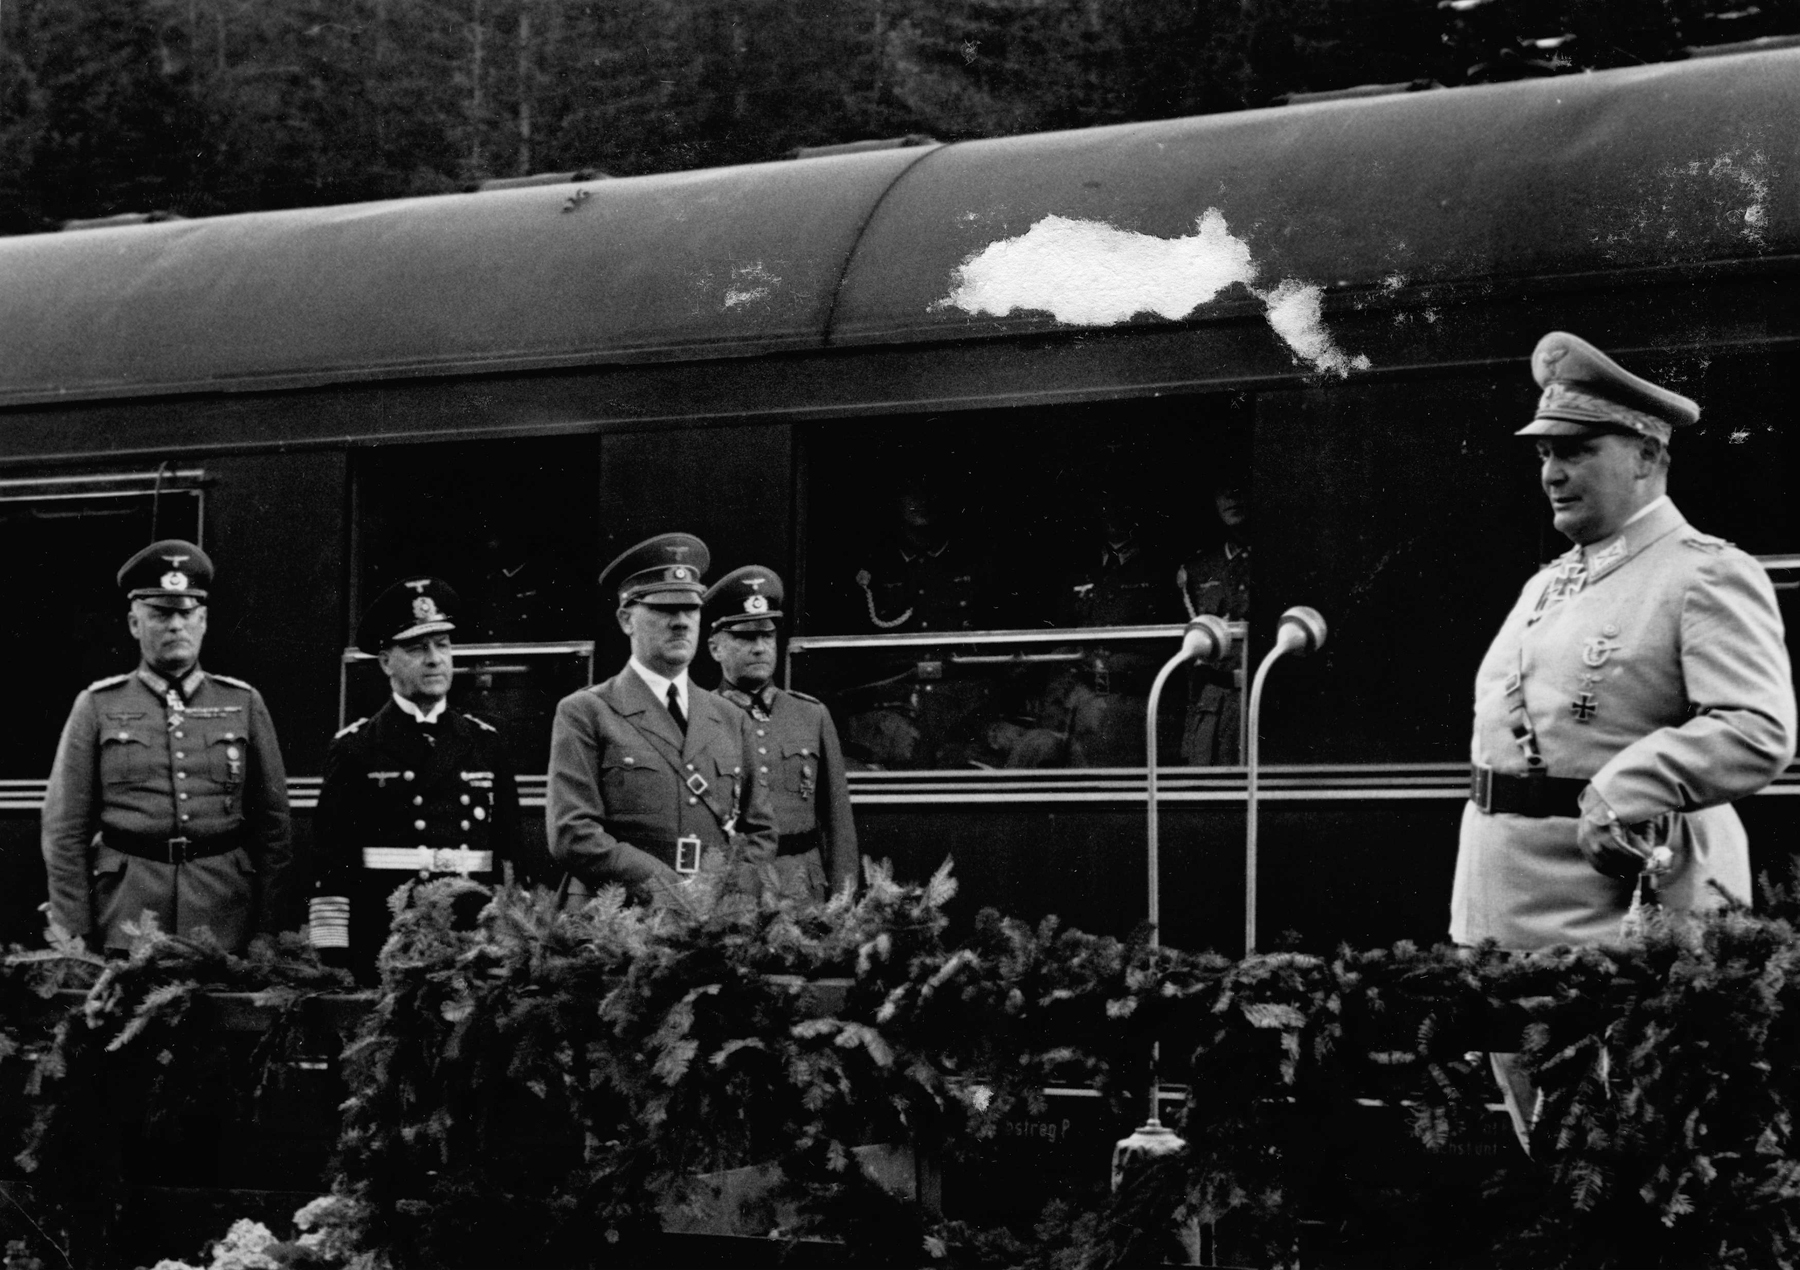 Hermann Göring makes a speech for Hitler's 52nd birthday in front of his Sonderzug